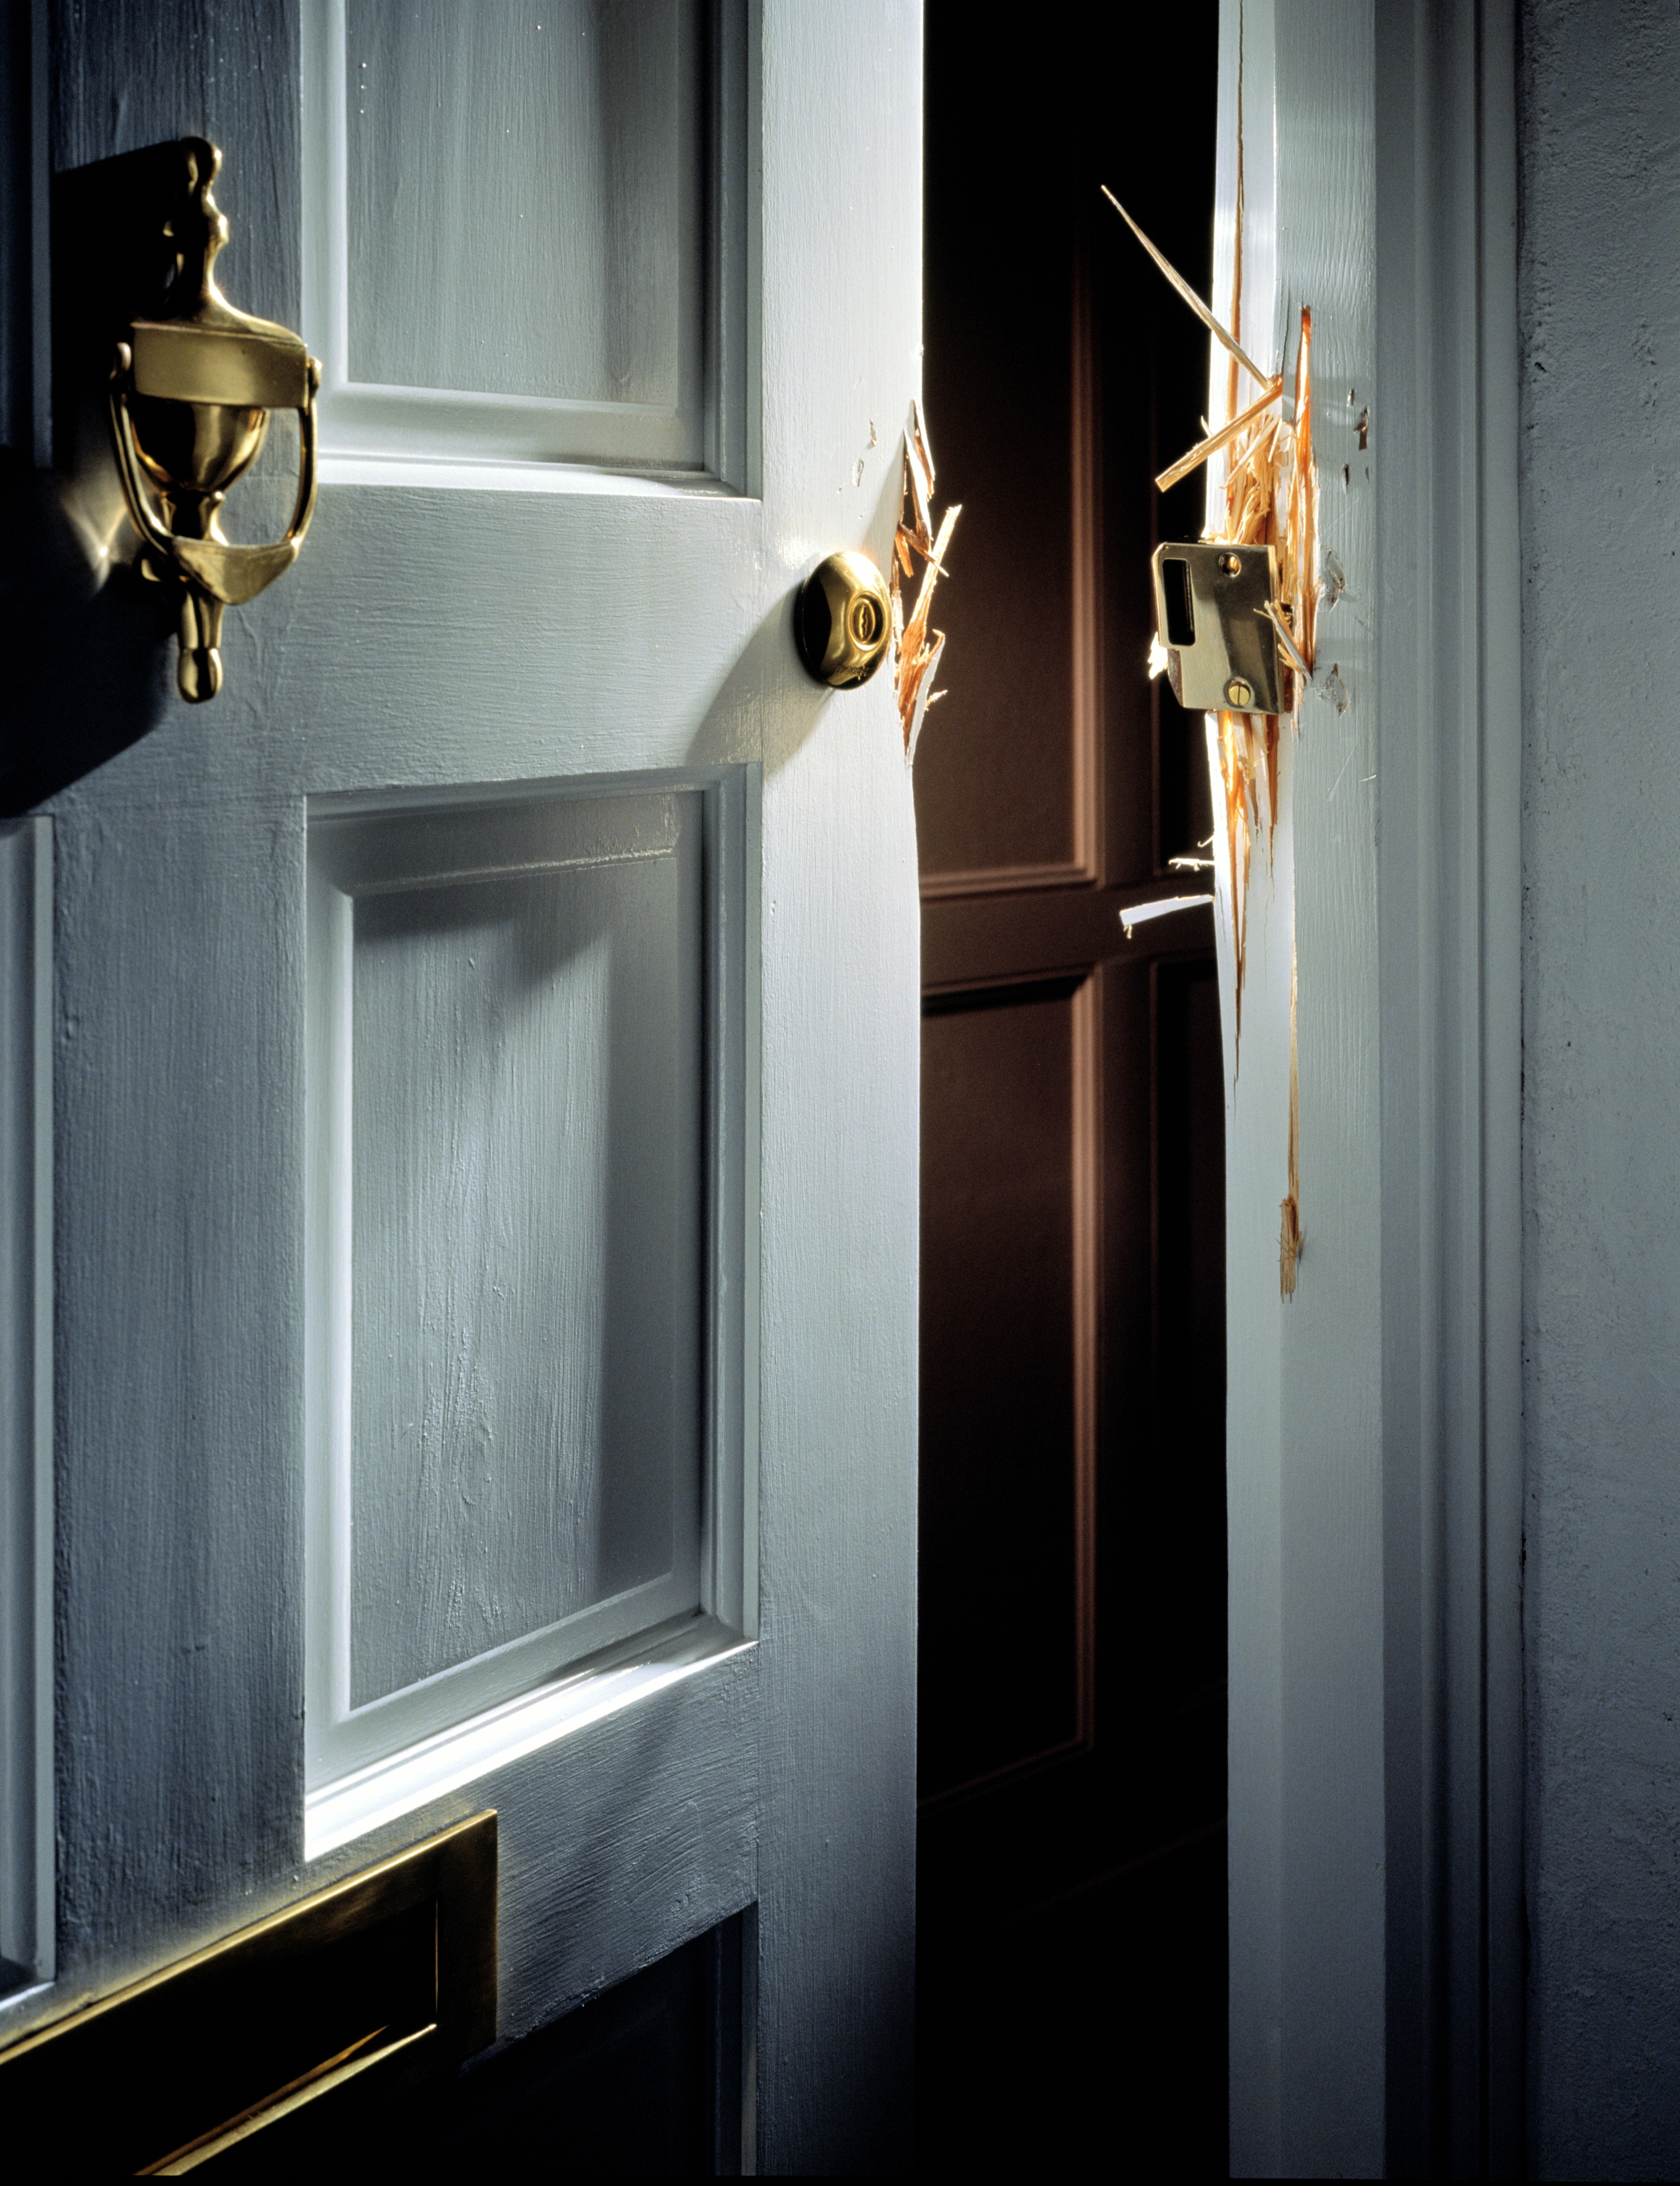 Some Common Security Measures Actually Attract Burglars